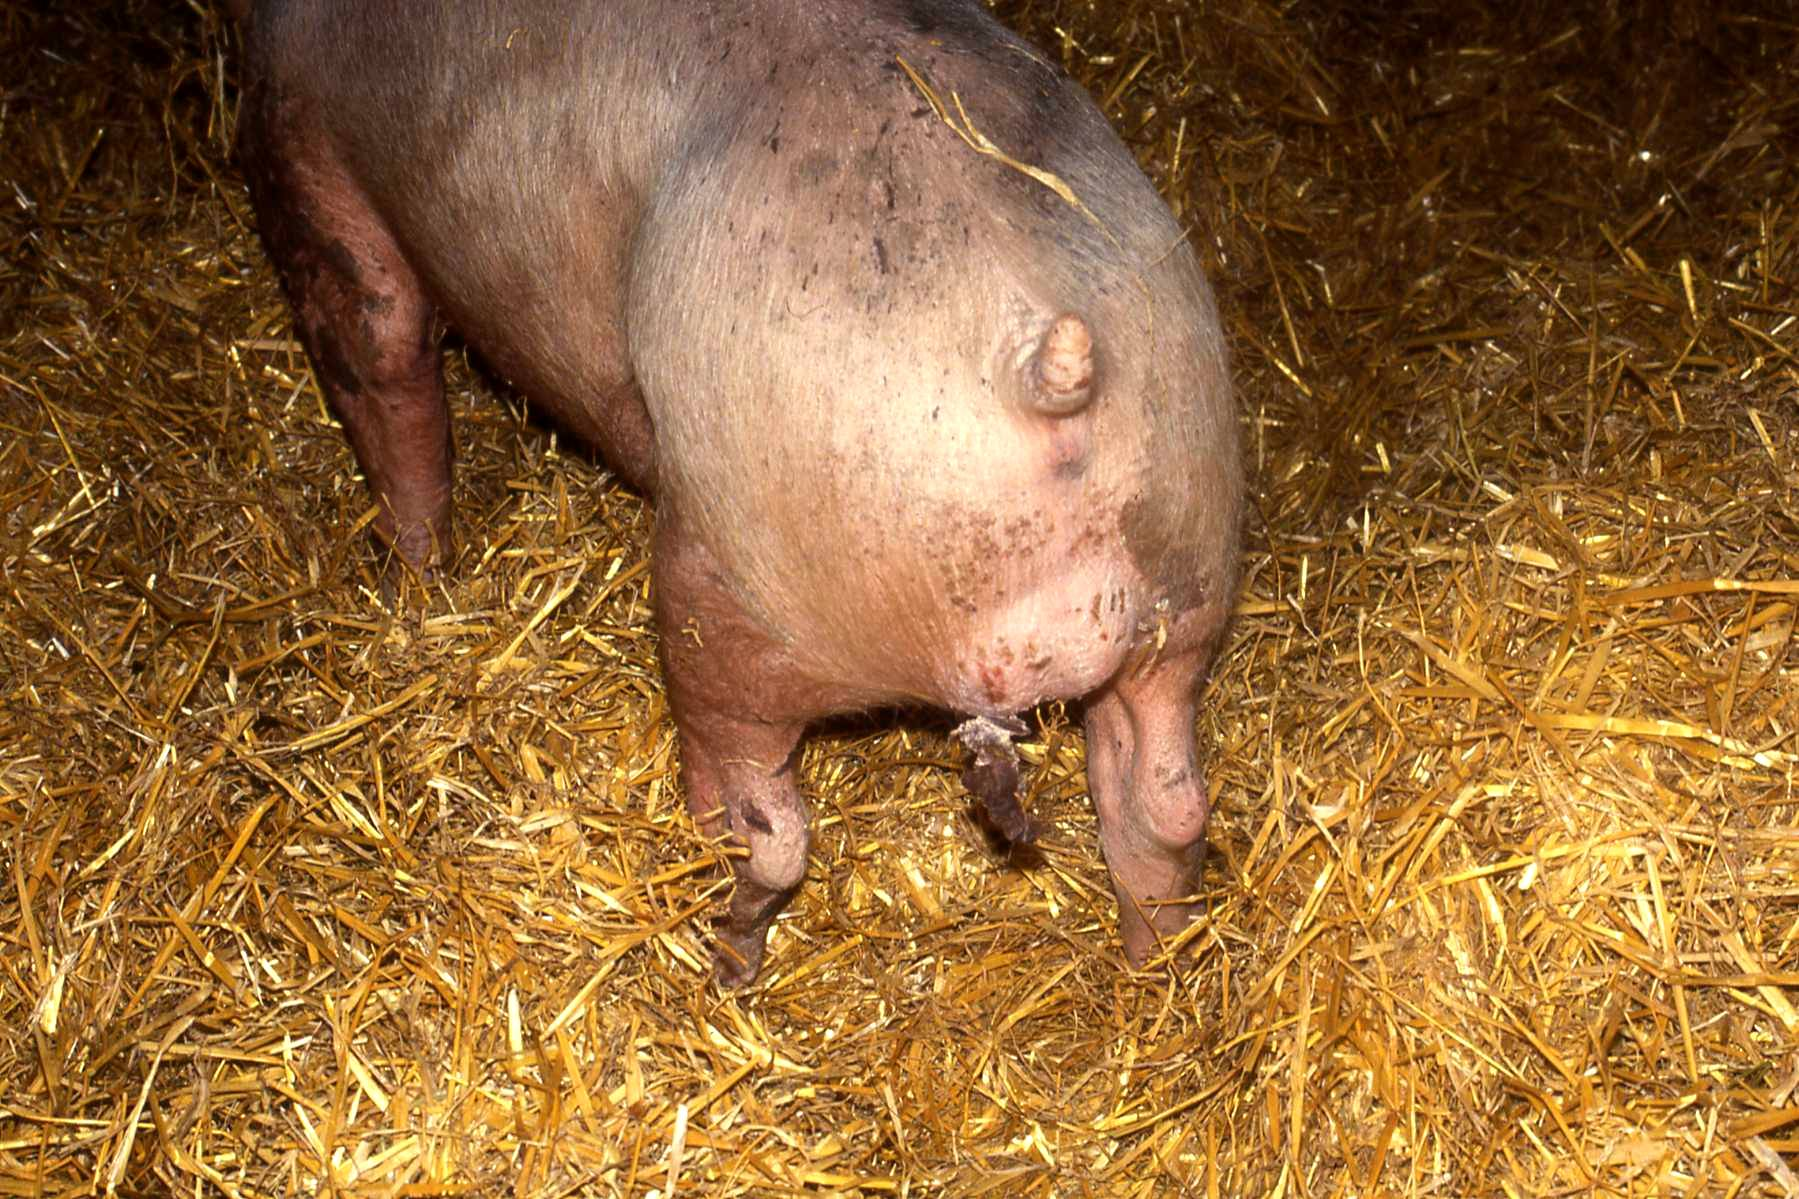 Swine Erysipelas: Causes, Signs and Methods of Treatment